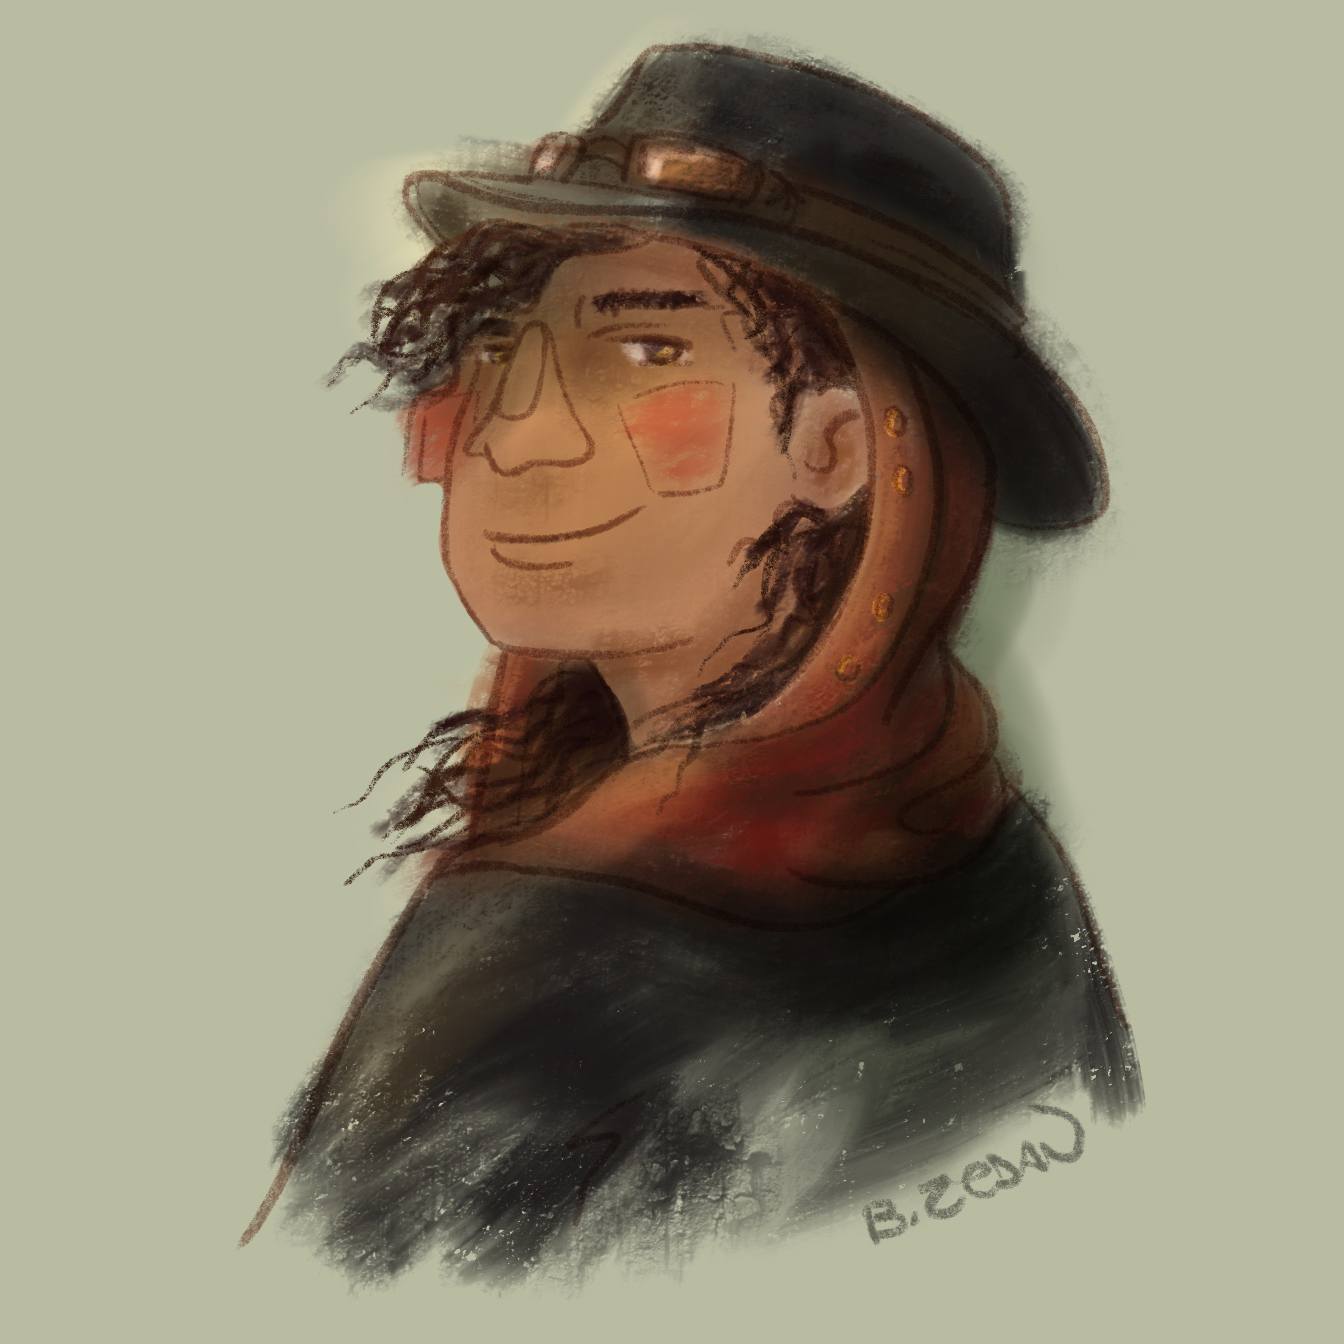 A quick looking digital sketch of the character described above, looking over her shoulder. She has light brown skin and dark brown curly hair that is mostly covered by a red hood and black brimmed cap with goggles on it.